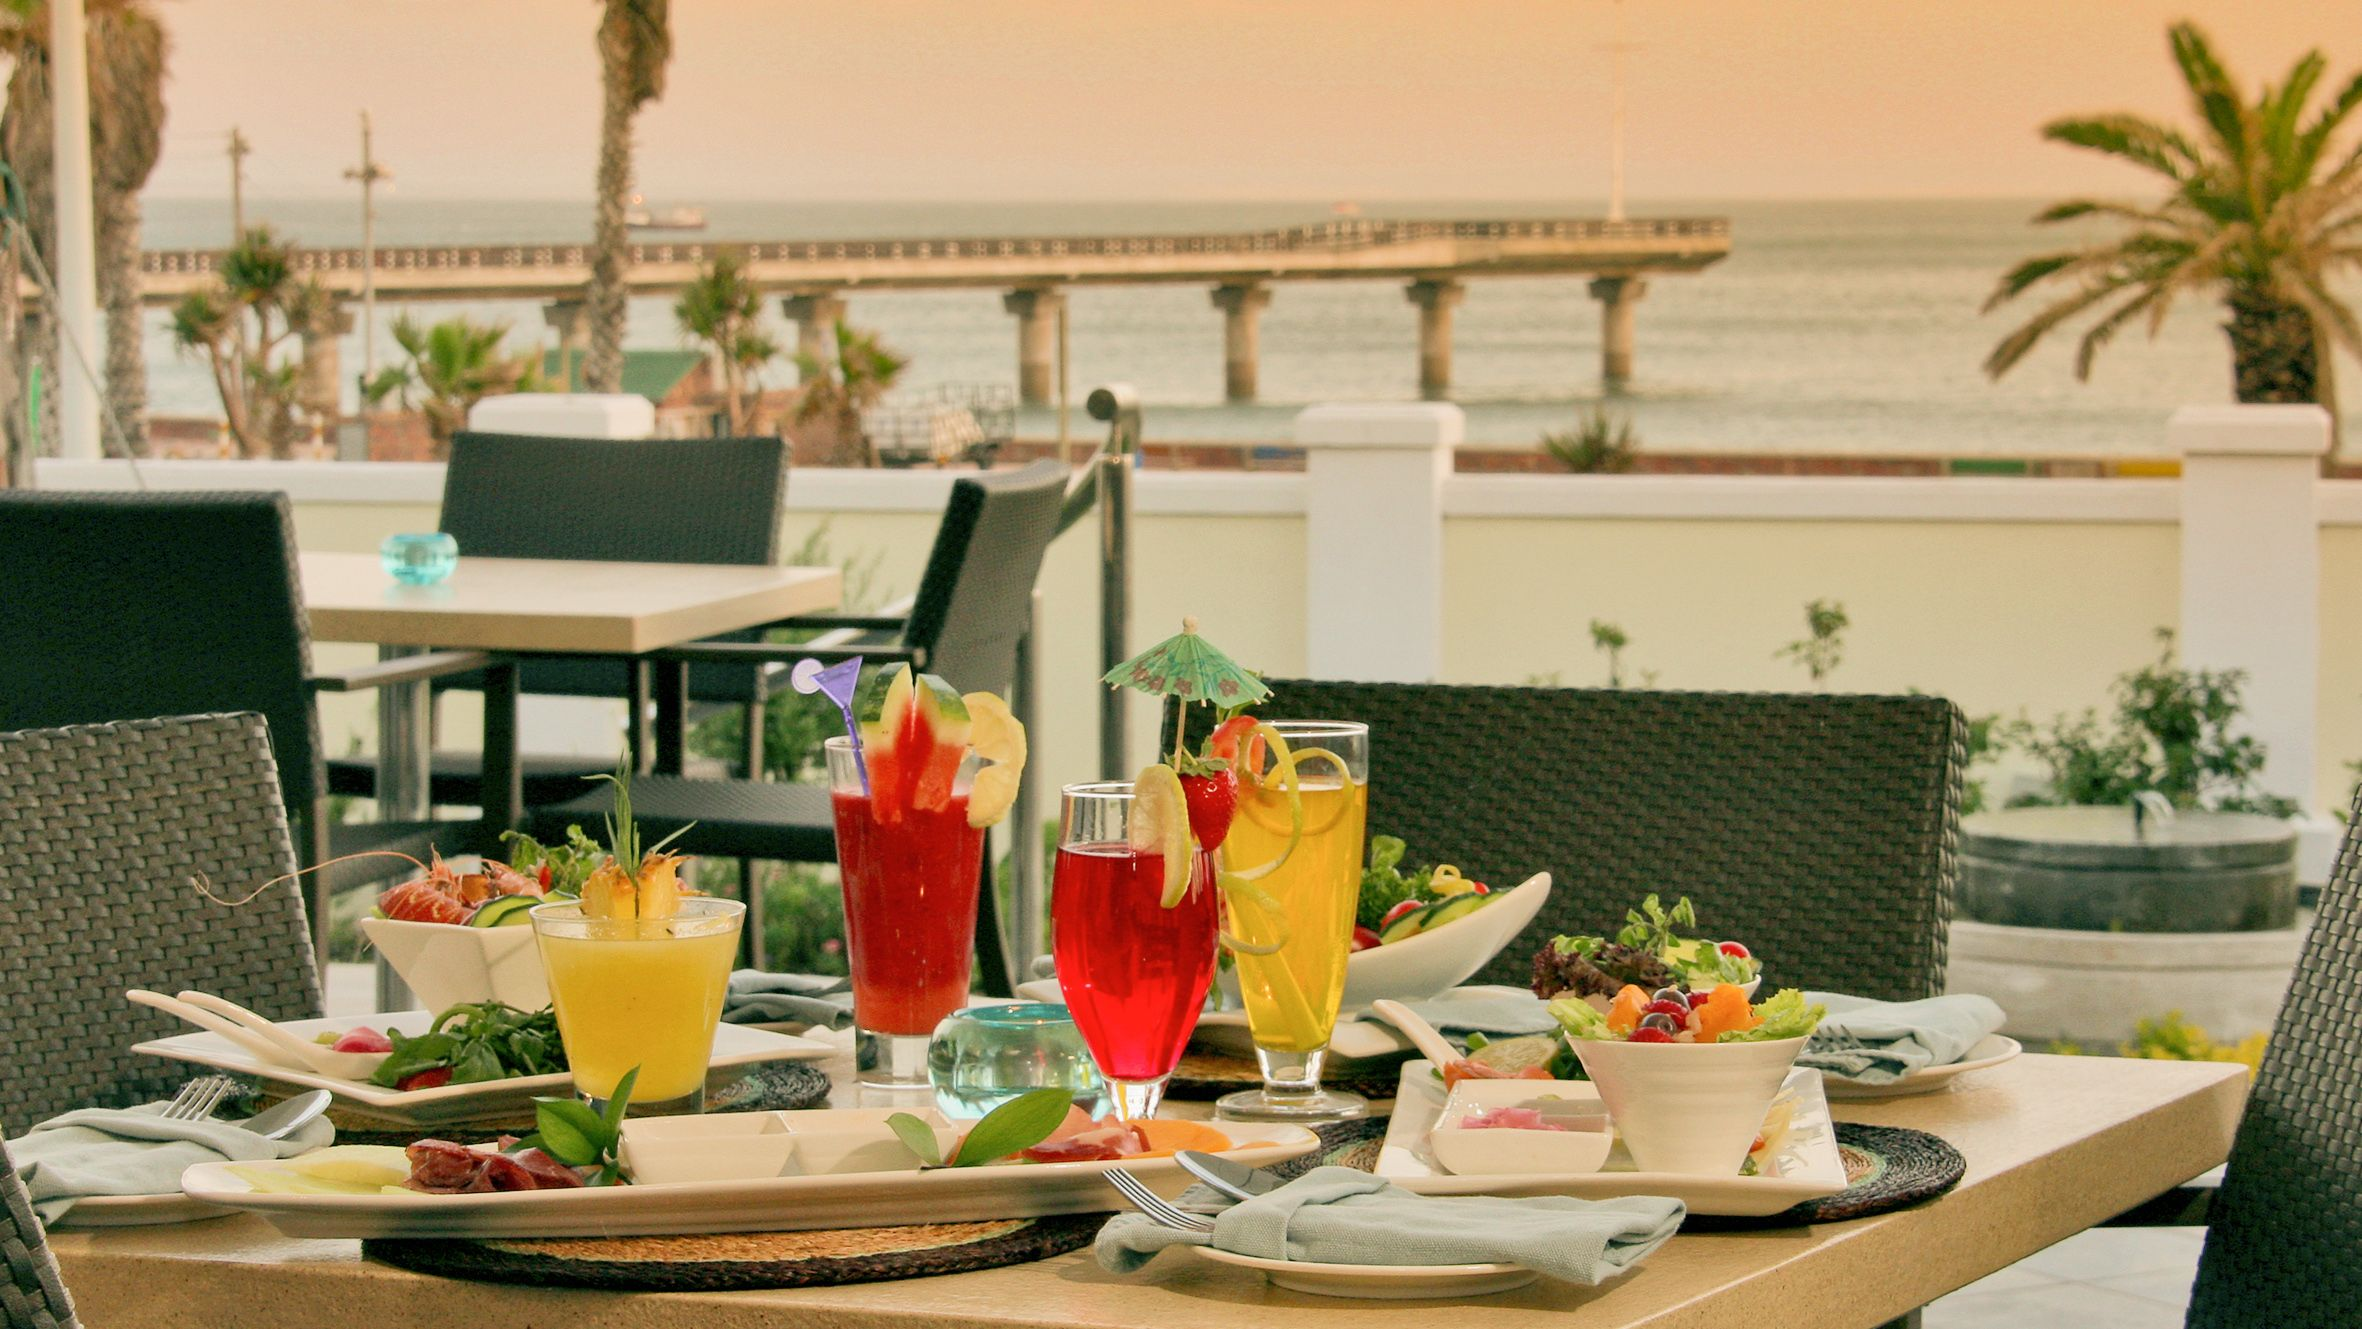 #cocktails #beachfront #portelizabeth #thebeachhotel #luxury #accommodation #restaurant #theverandah